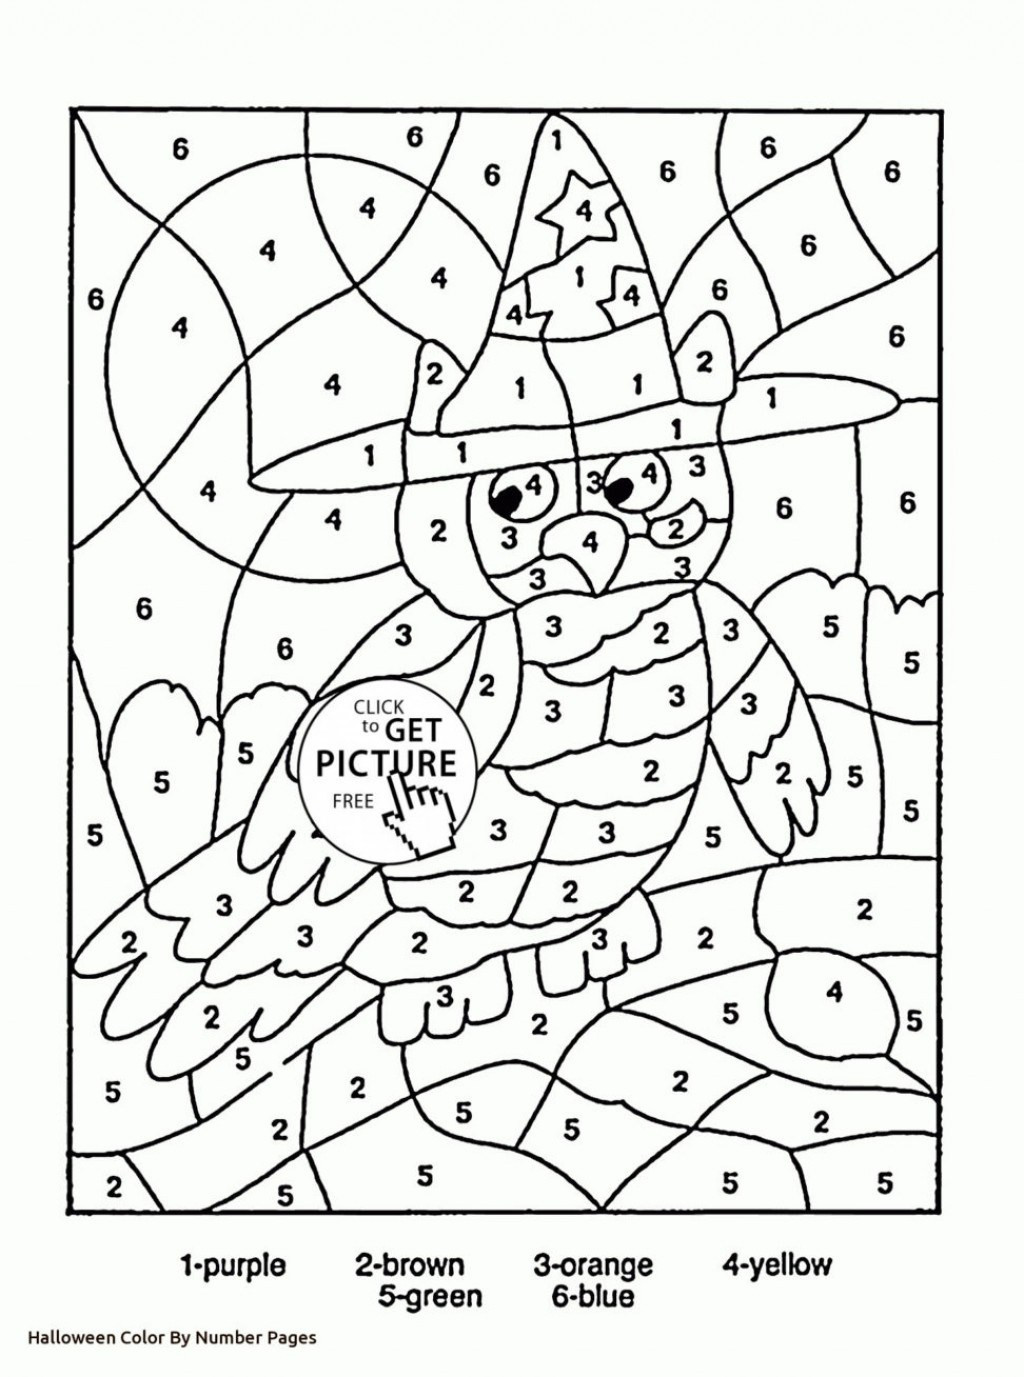 Coloring Worksheets for 3rd Grade Coloring Book Coloring Book Freeiplication Worksheets 3rd